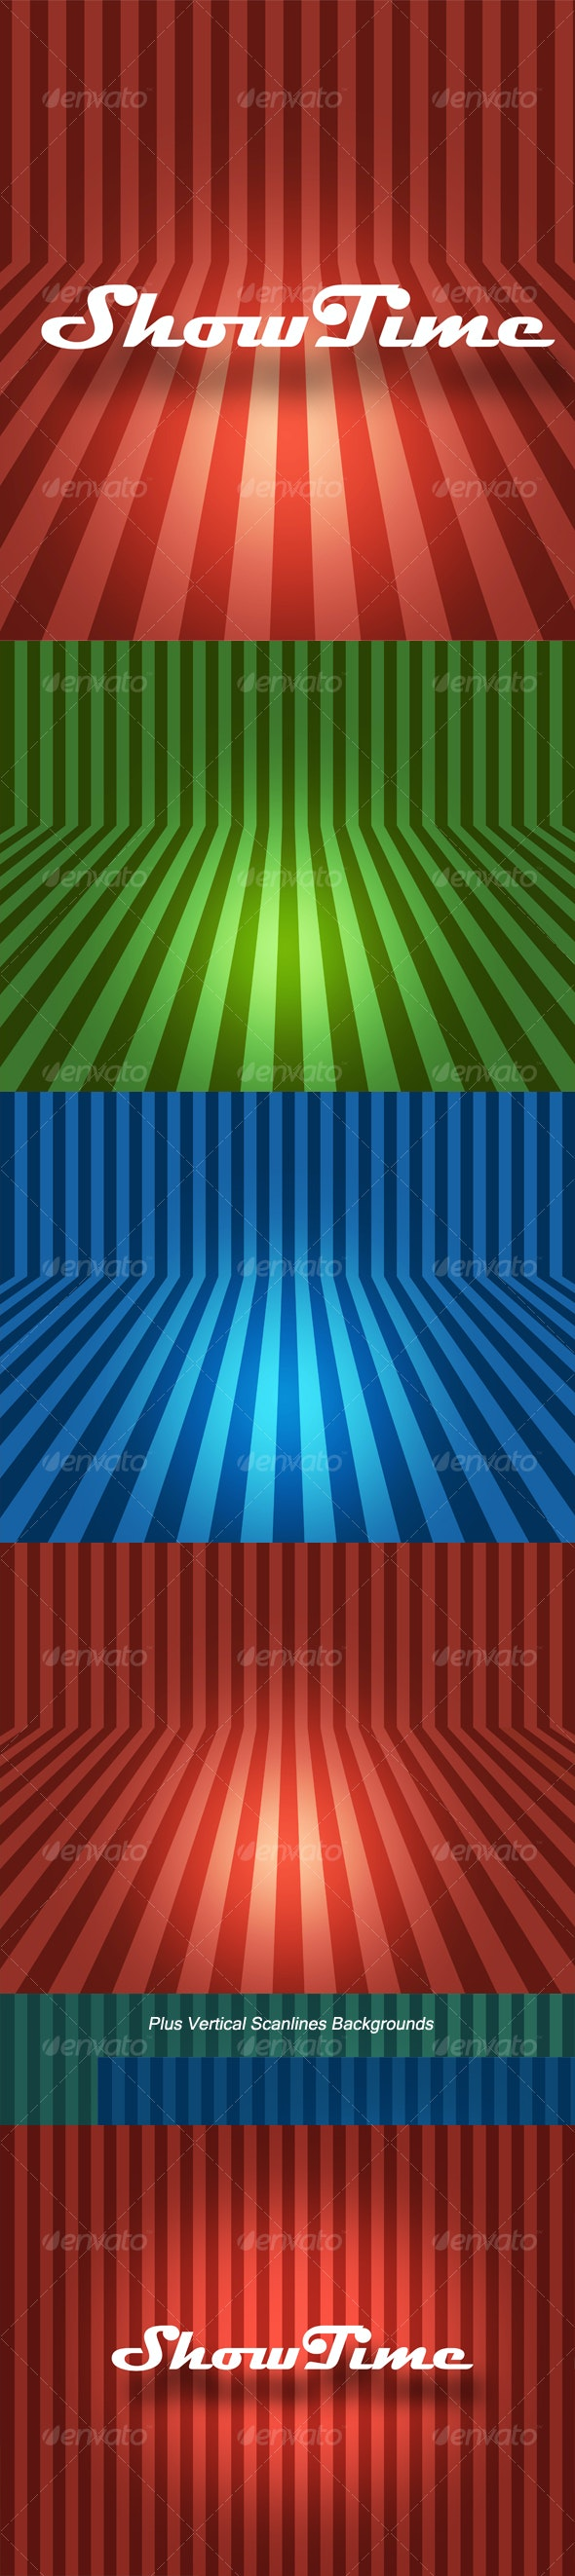 Bent Scanlines Backgrounds - Abstract Backgrounds